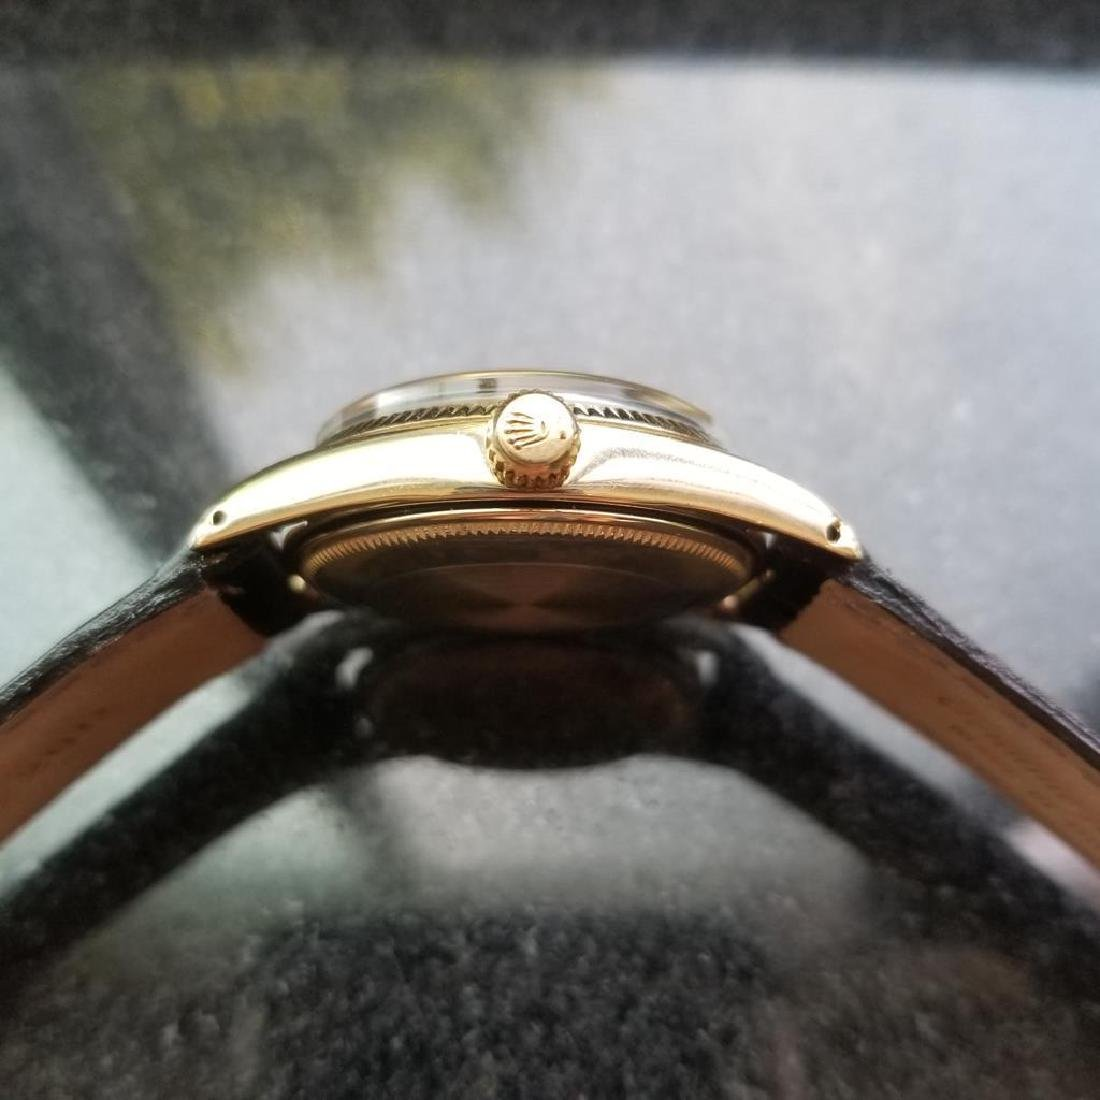 ROLEX Men's 14K Gold Oyster Perpetual 1011 Bombay - 5